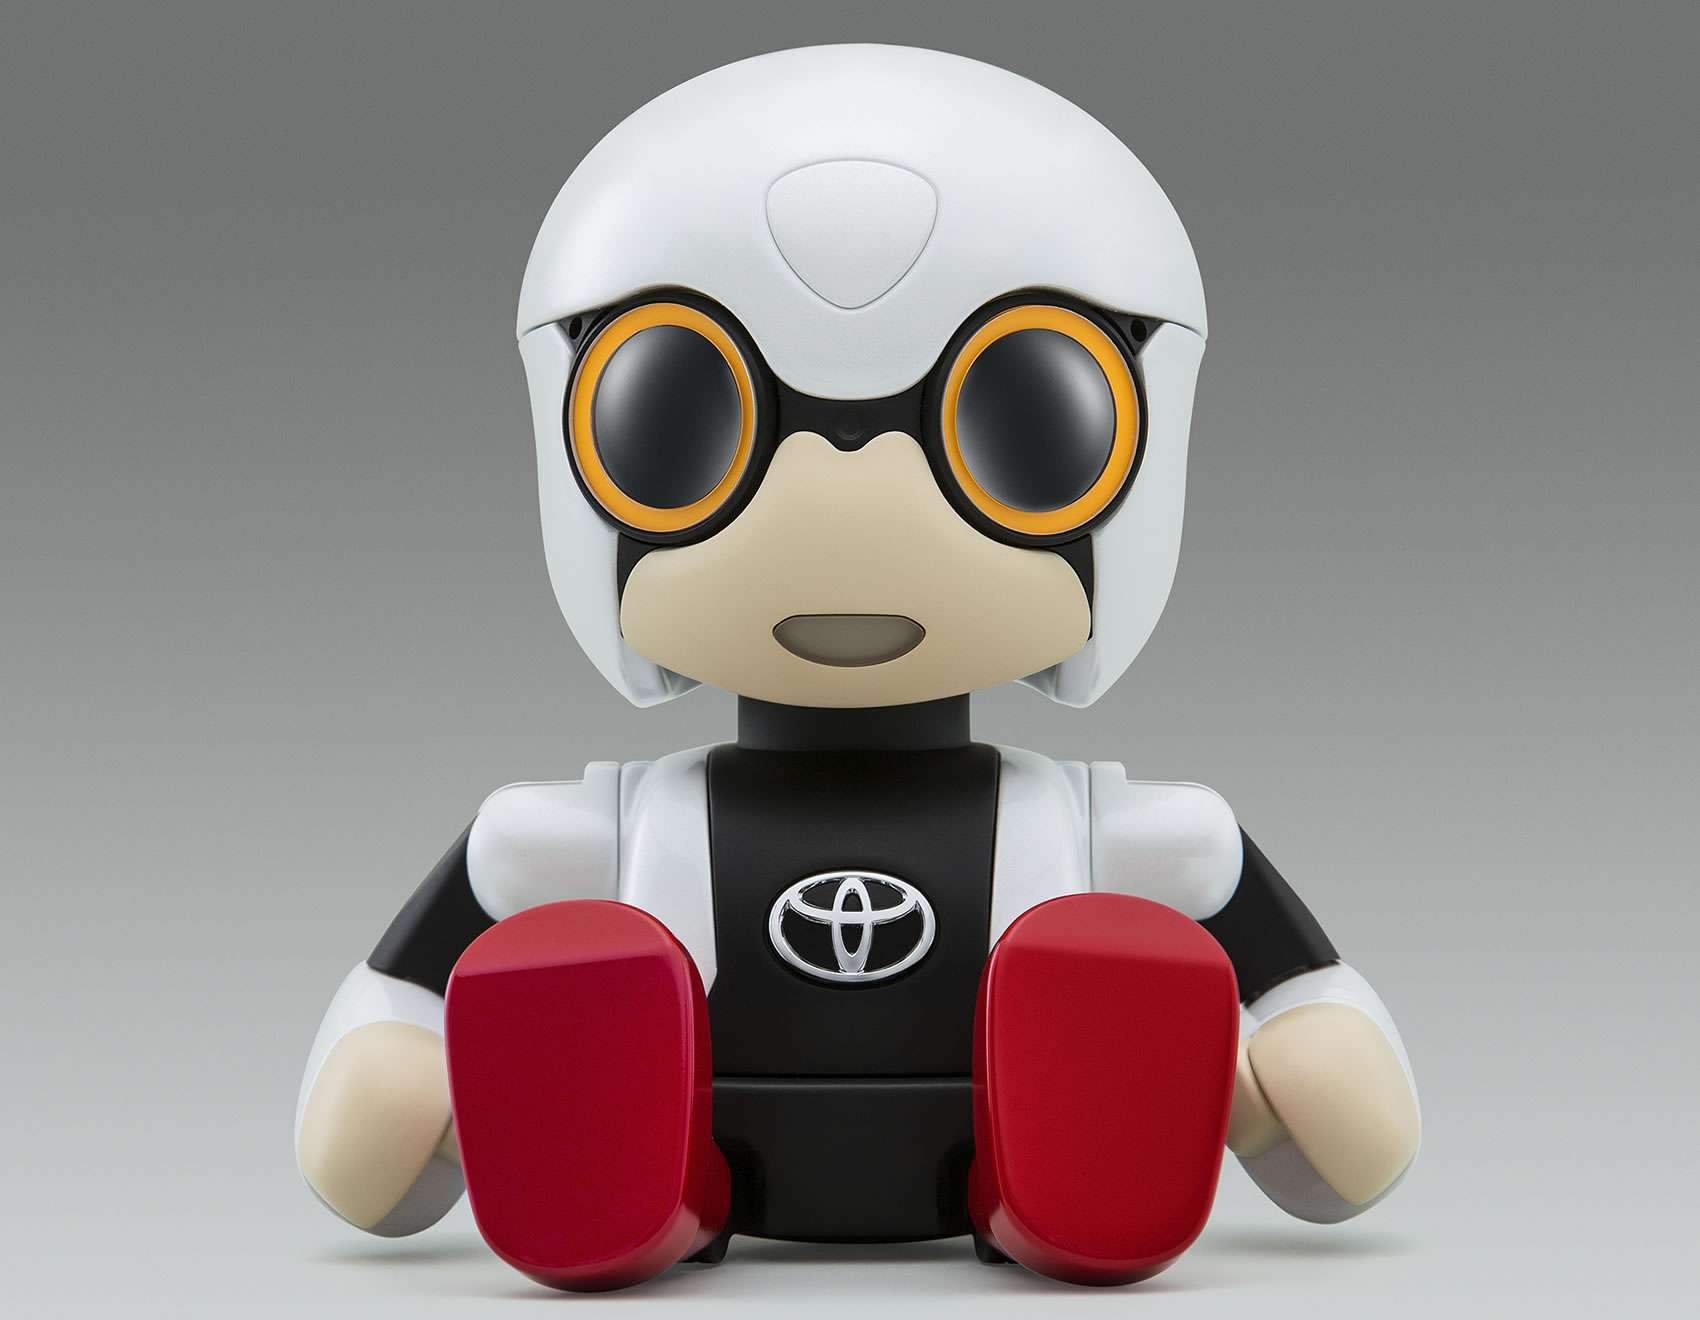 Bringing home the 'NOW' generation of Robotics - Toyota's Kirobo Mini - © 1995-2016 TOYOTA MOTOR CORPORATION. All Rights Reserved.